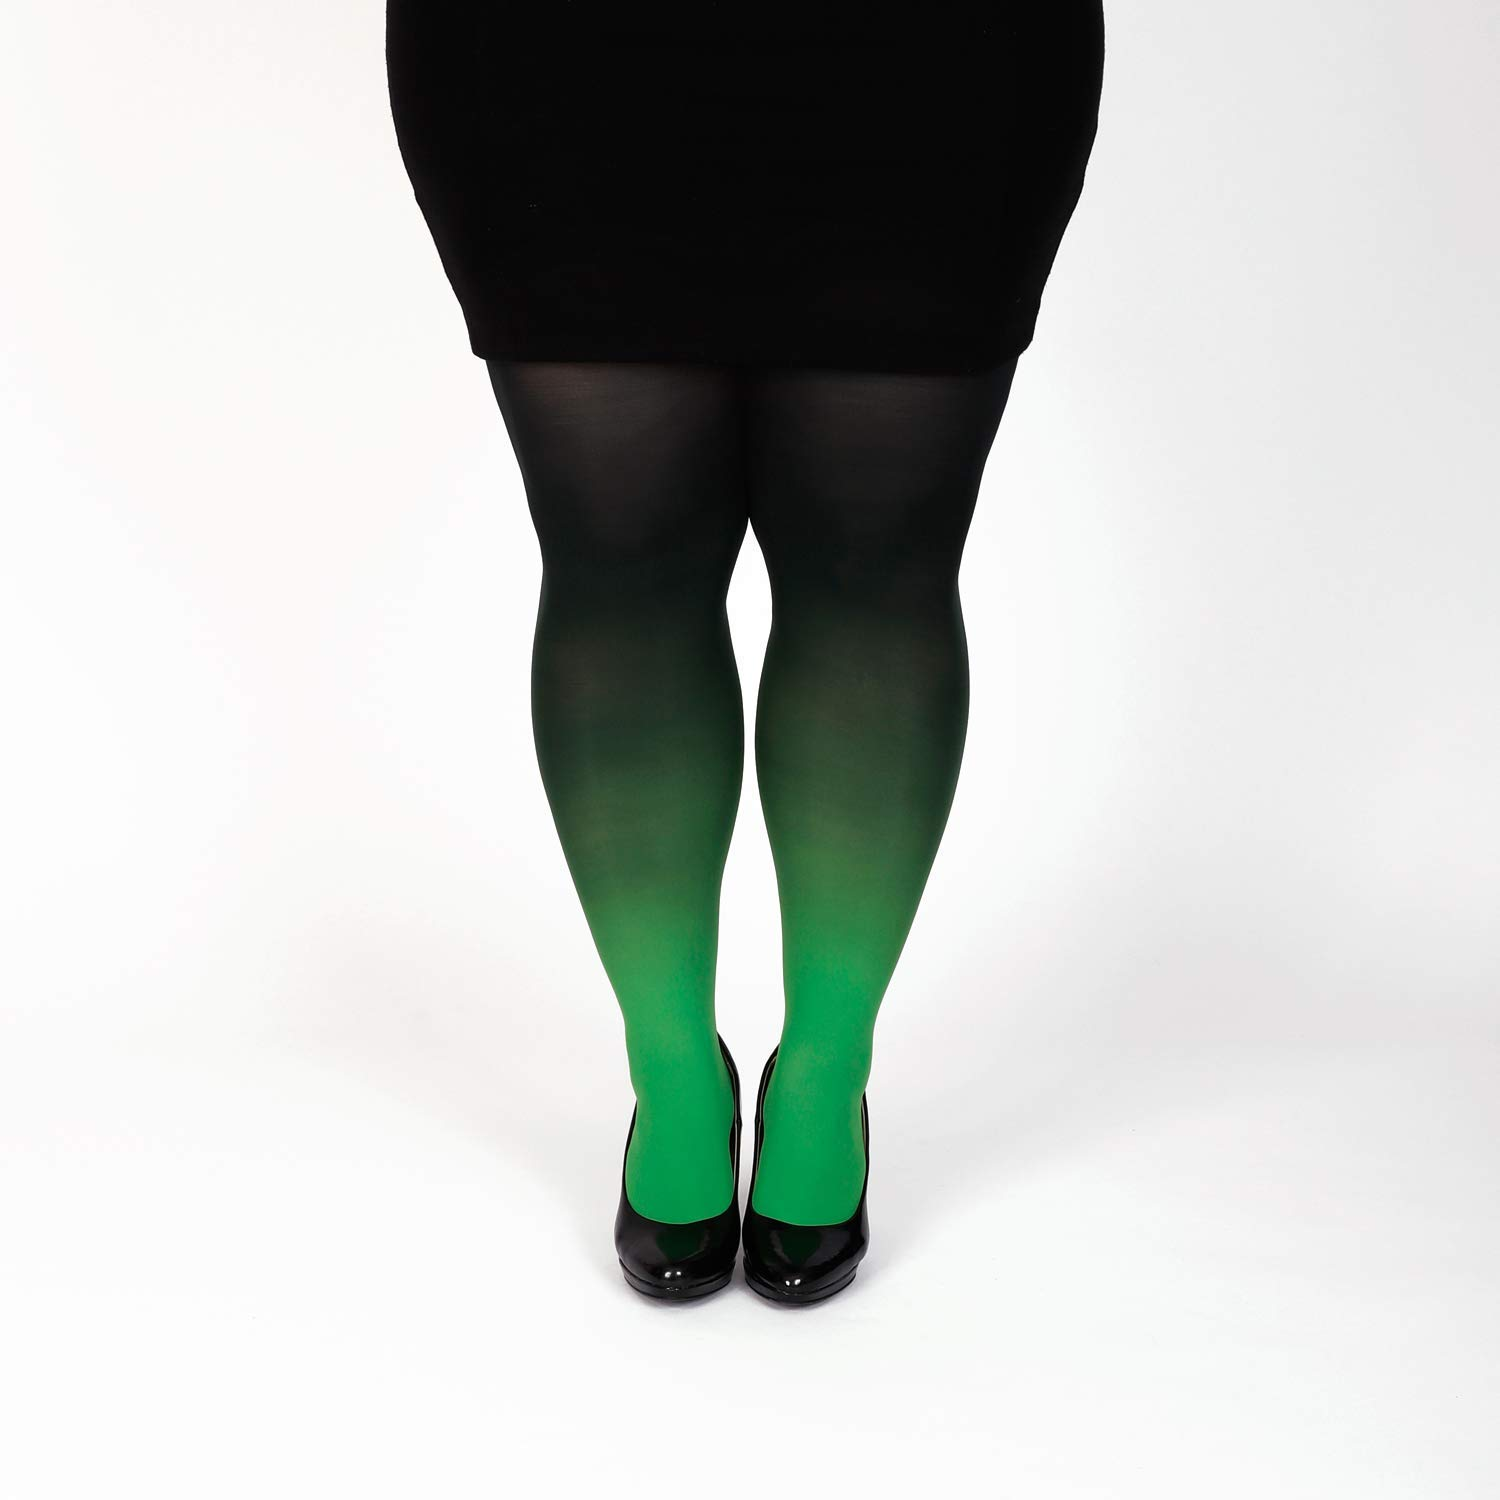 be810047838aa Amazon.com: Green plus size semi opaque tights gradient pantyhose Christmas  gift for her: Handmade